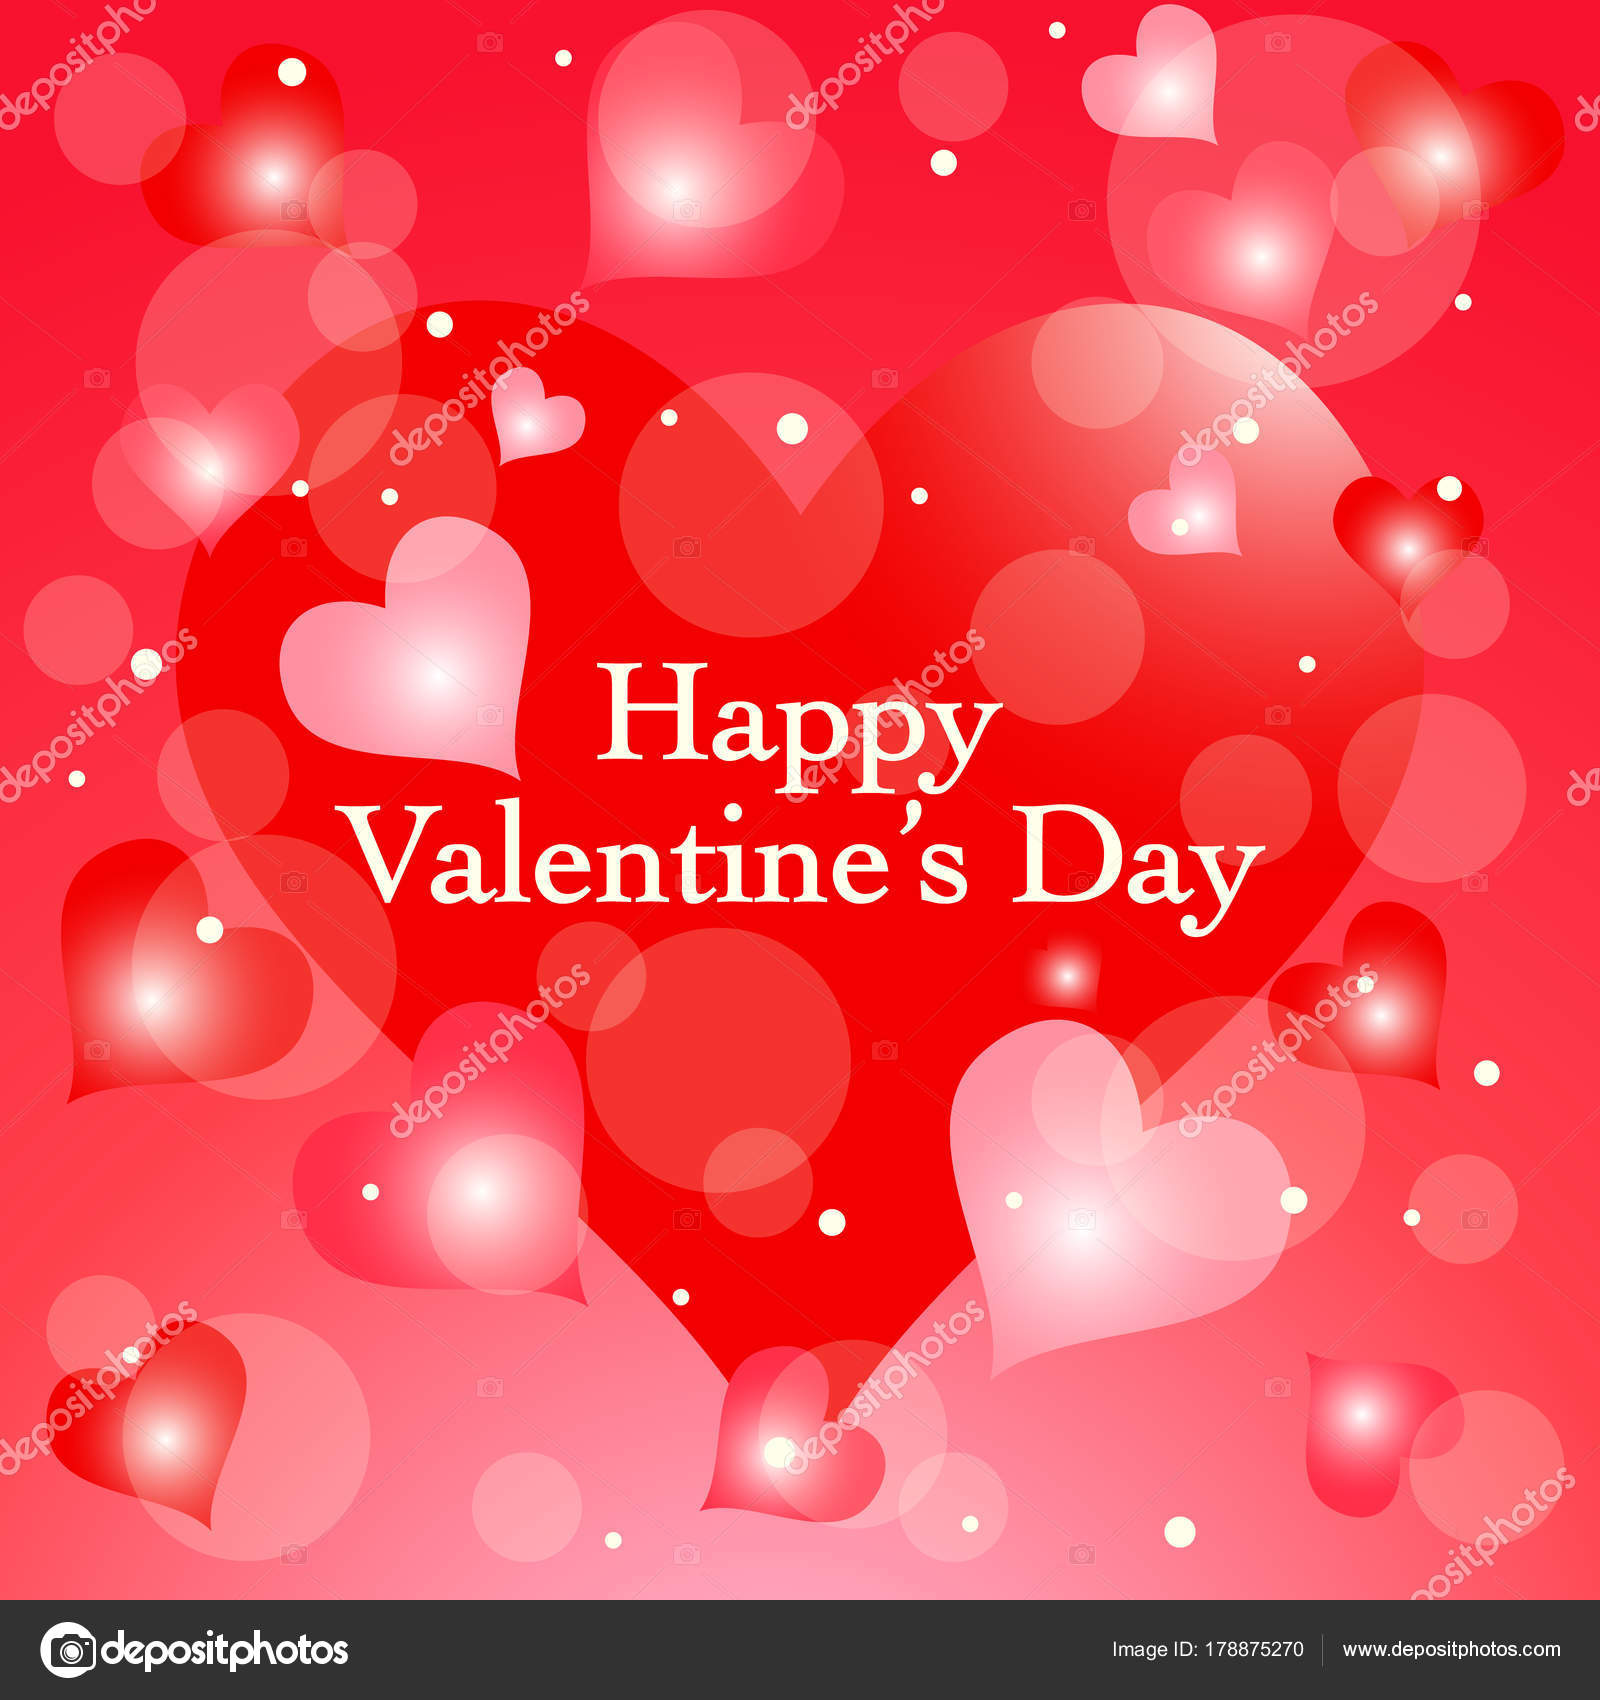 Valentines Day Love Background Romantic Red Heart Background Stock